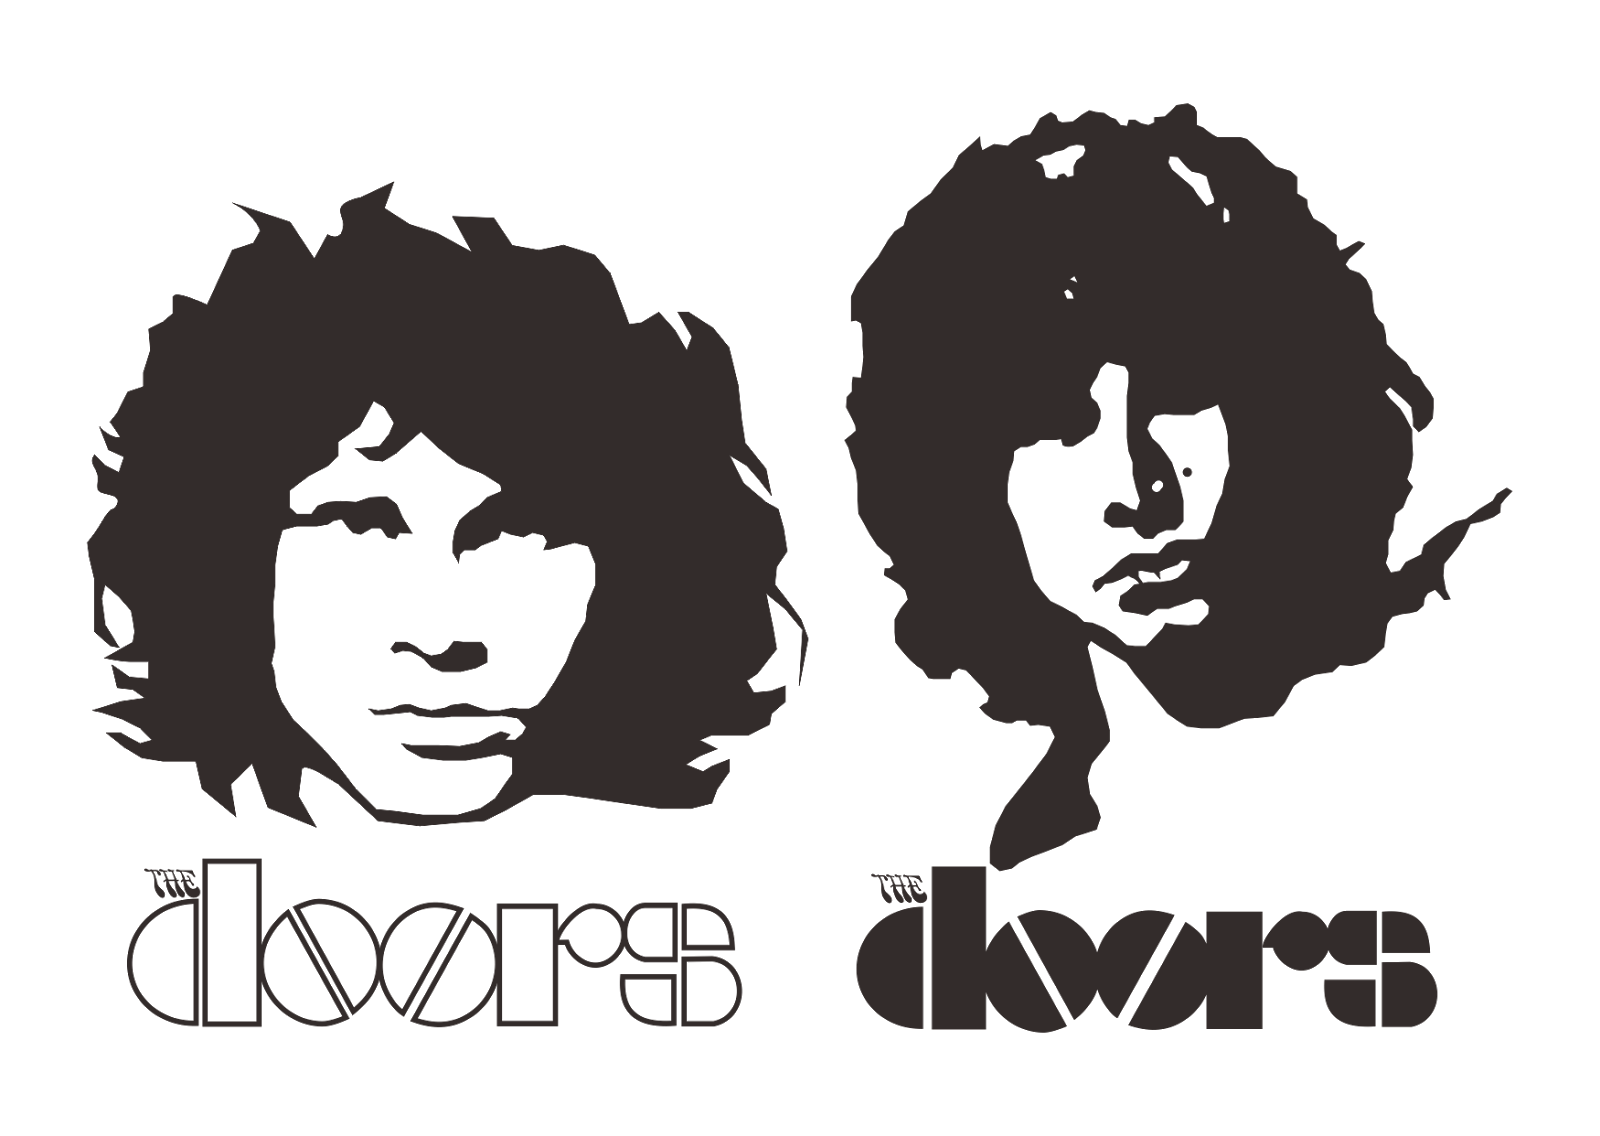 clipart royalty free download Jim morrison the doors. Vector bands poster